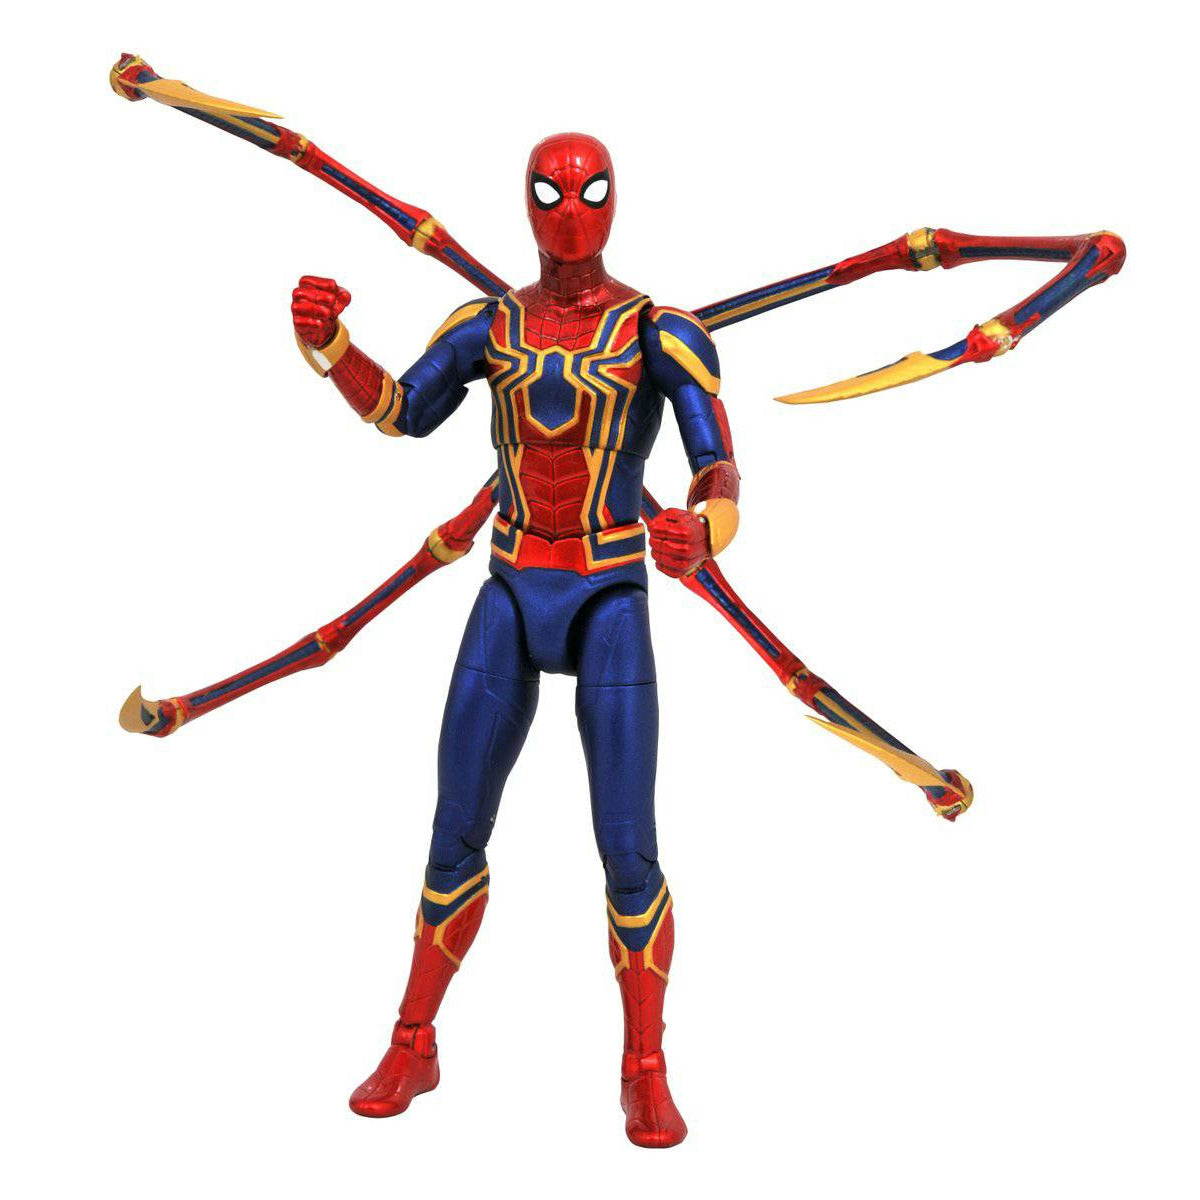 Marvel Select Avengers: Infinity War Iron Spider-Man Action Figure